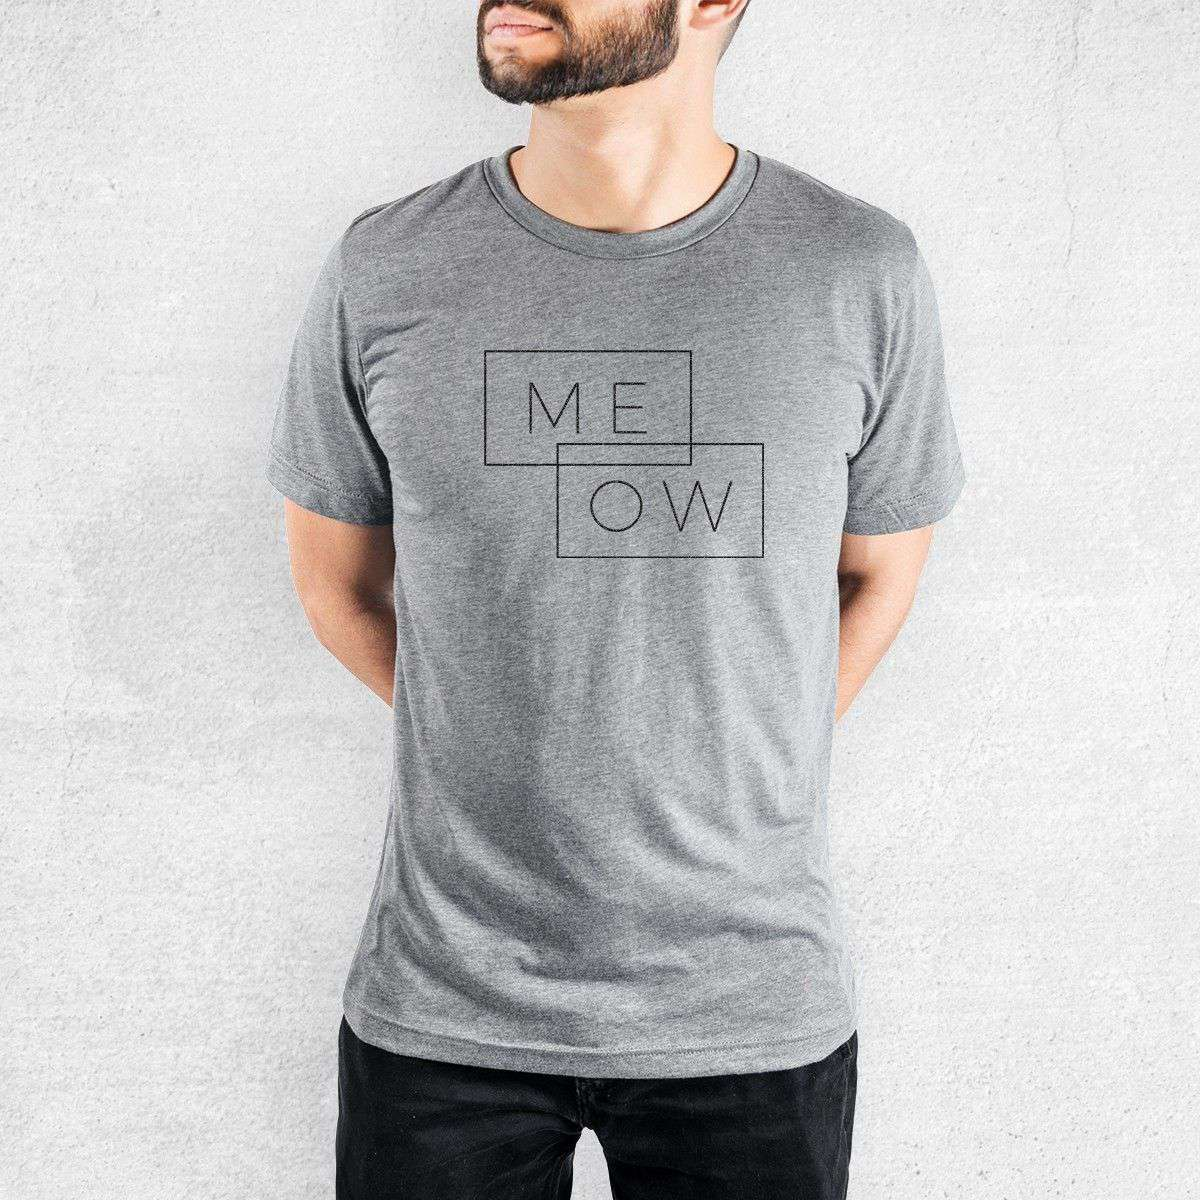 Me-ow Double Rectangle - Tri-Blend Unisex Crew